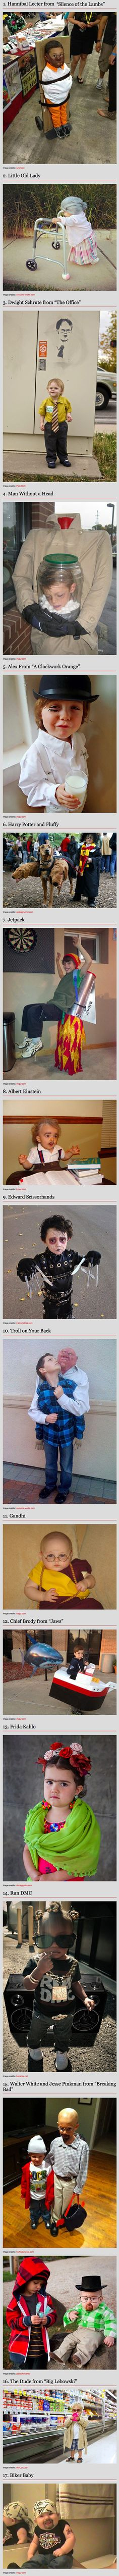 24 Extremely Clever Halloween Costumes for Kids That Deserve an Award - TechEBlog